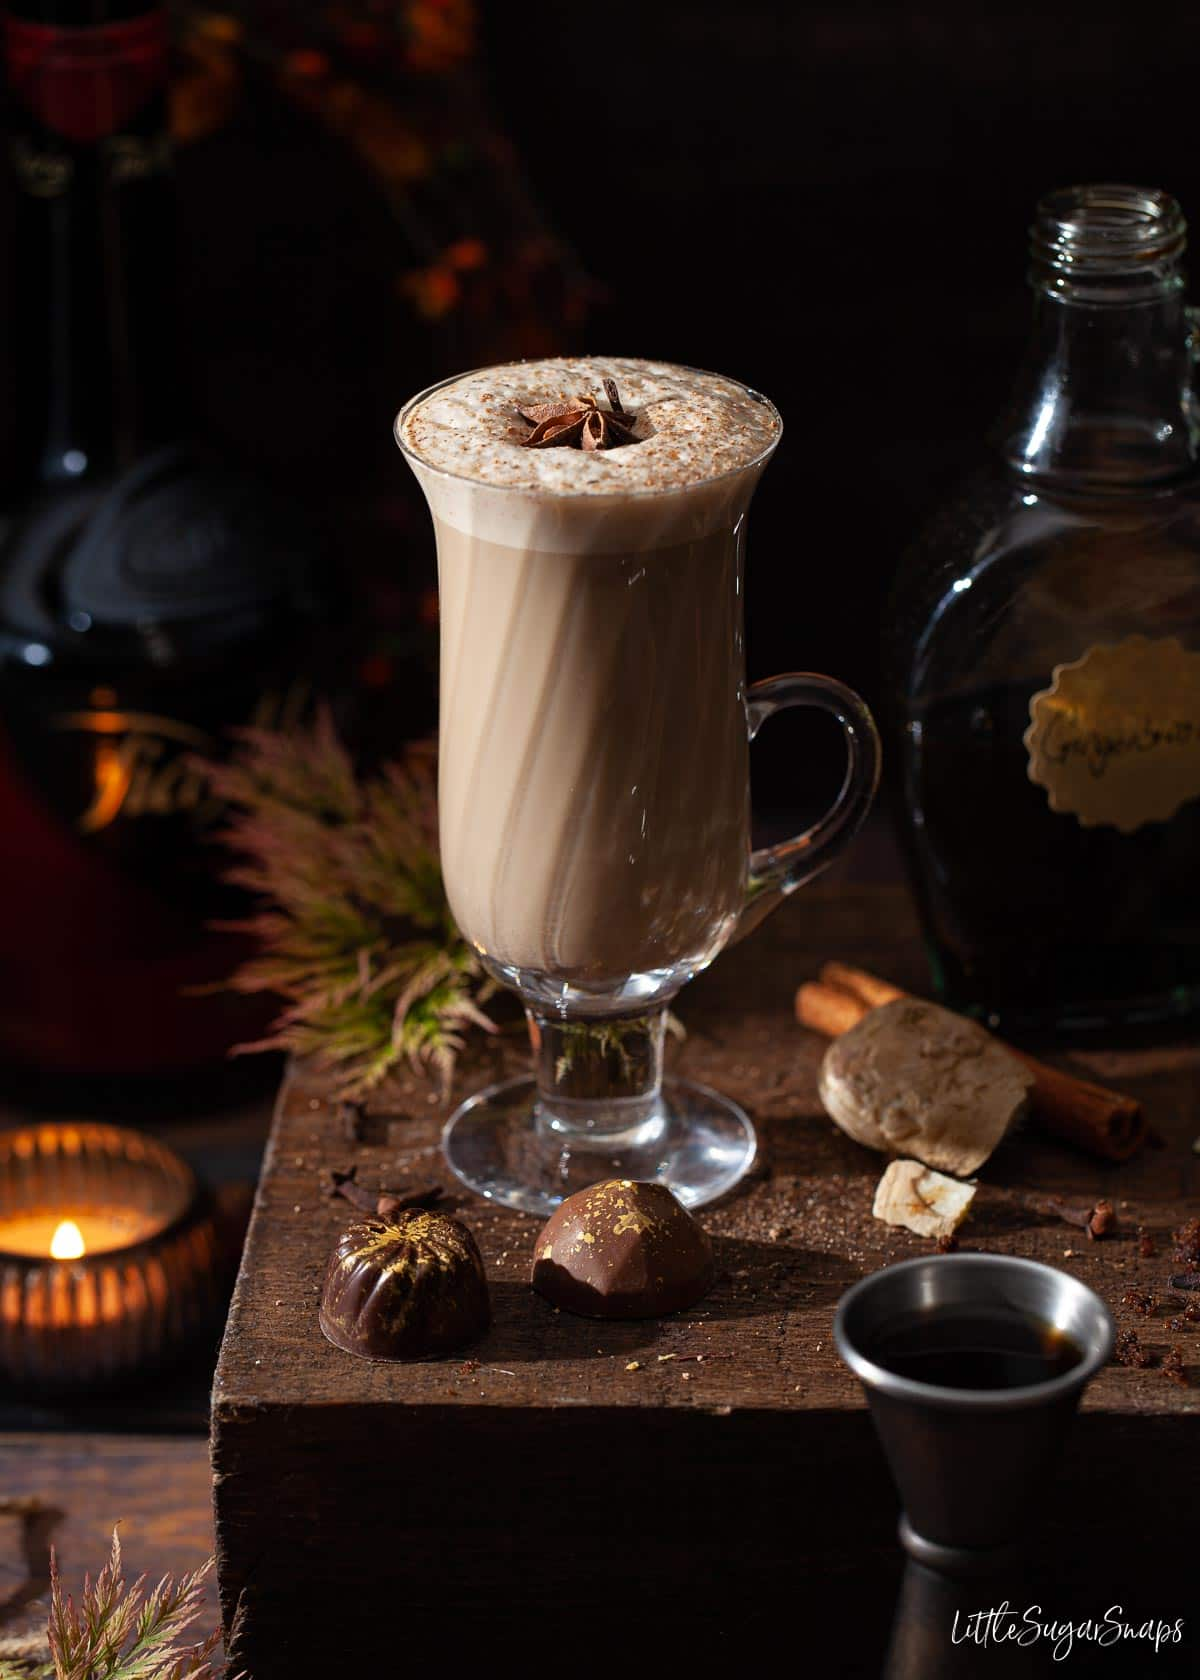 A glass of Christmas gingerbread spiced latte with frothy milk on top.